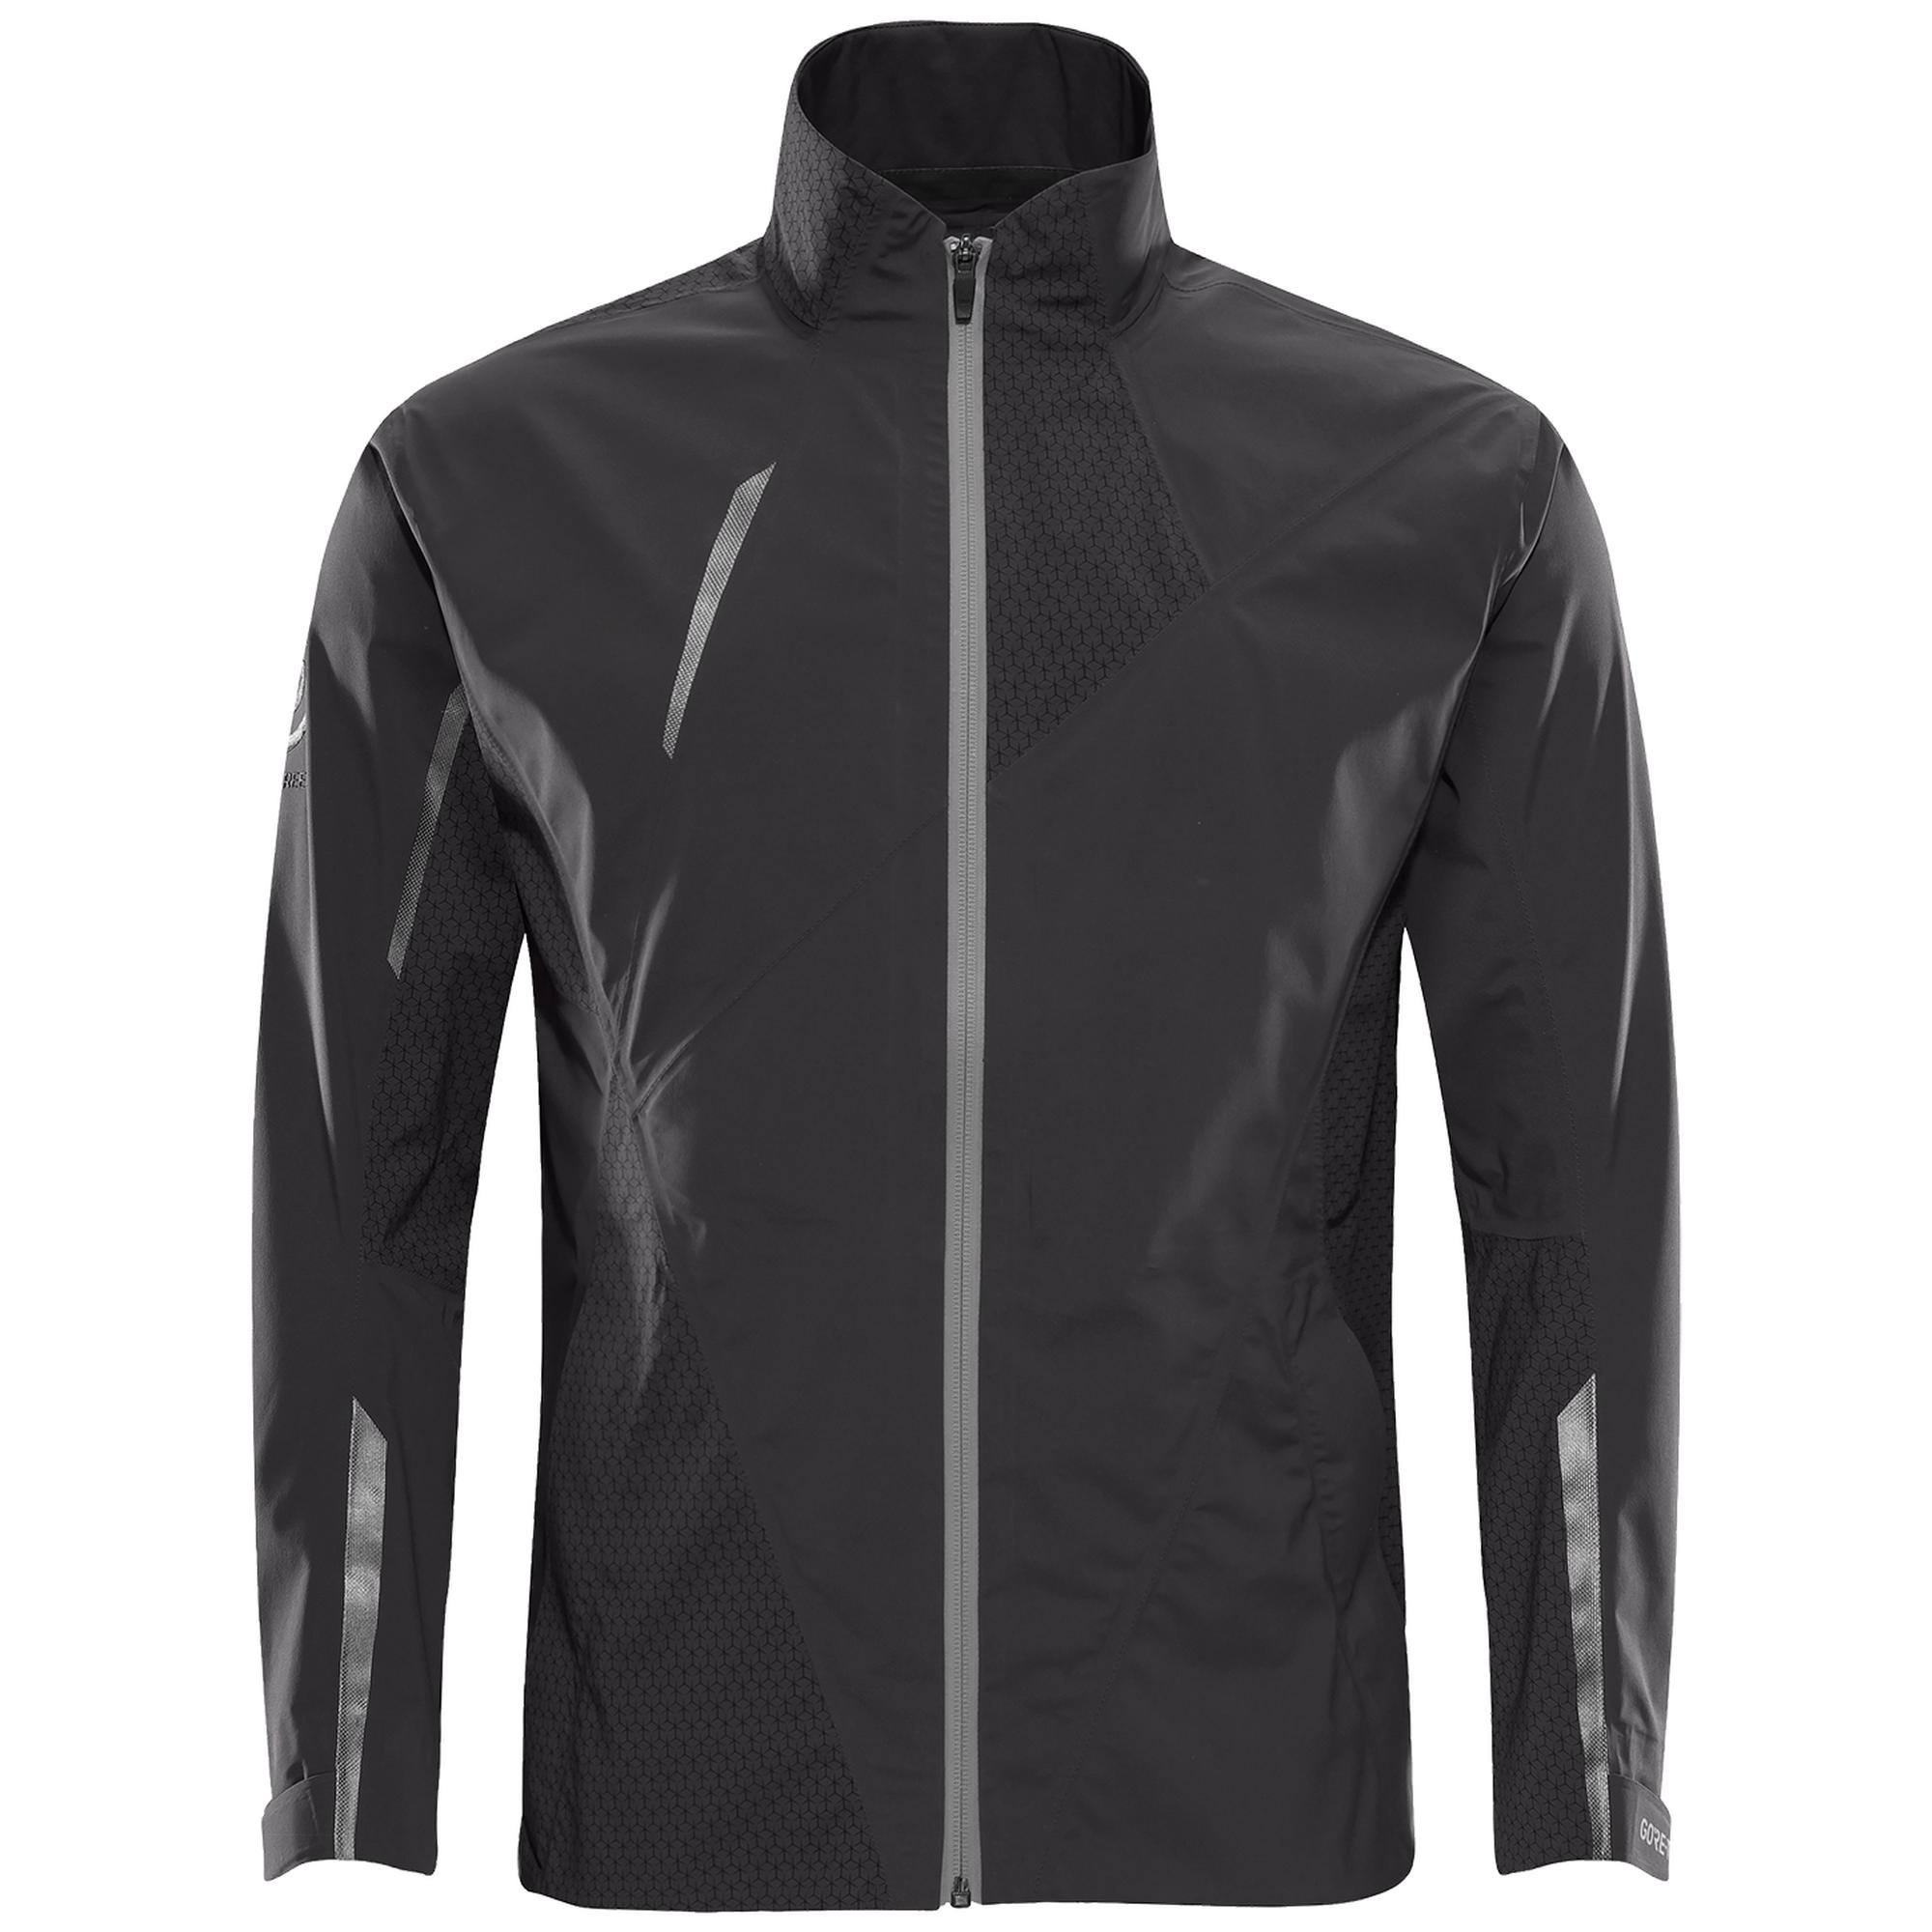 Men's E-Triangle Iron Jacket